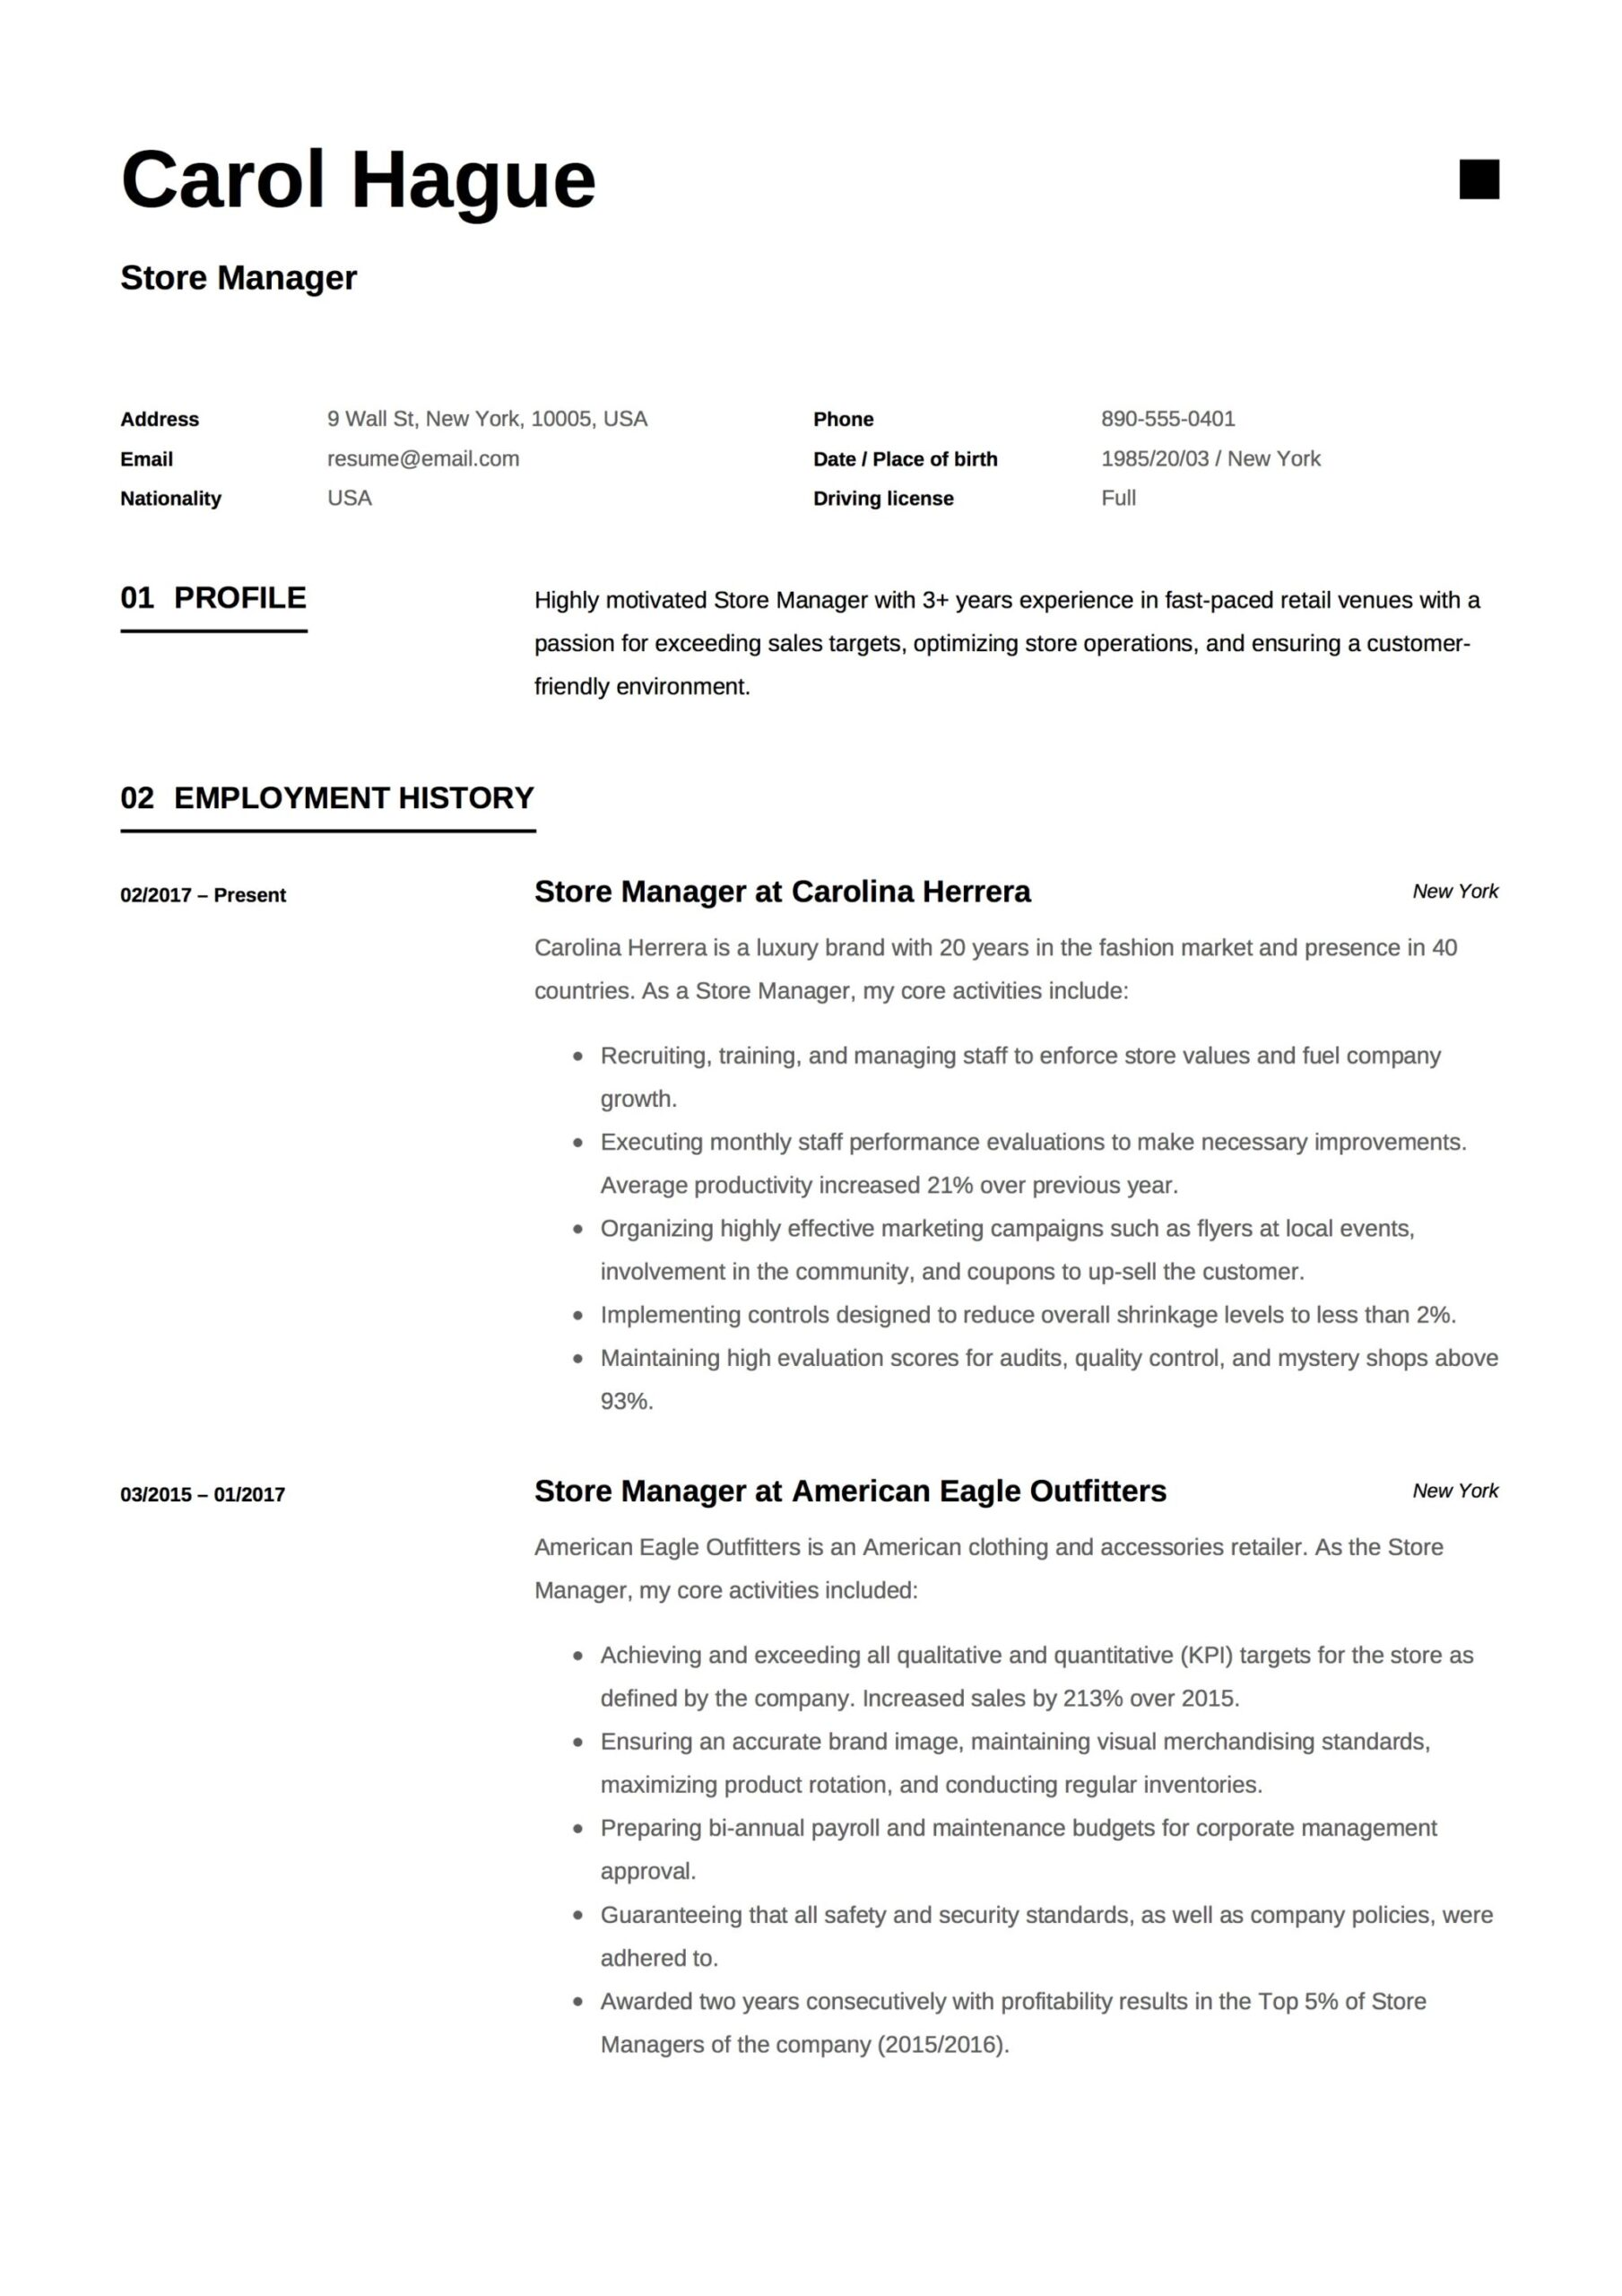 store manager resume guide samples pdf objective retail carol hague example fraud Resume Resume Objective Retail Manager